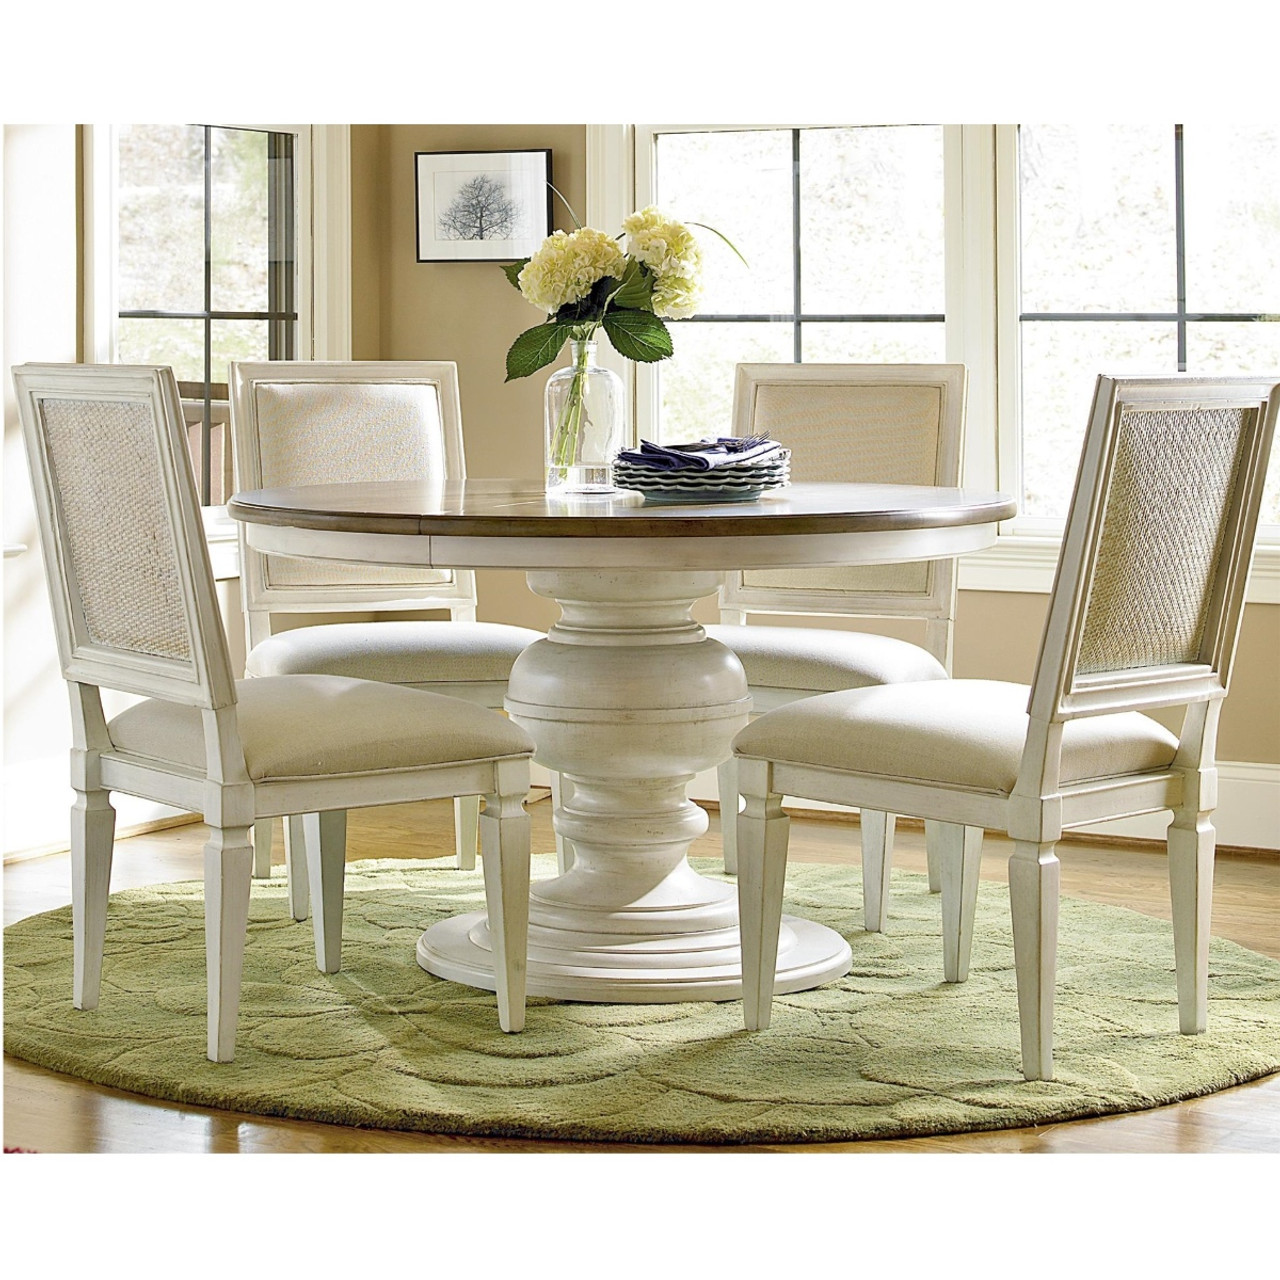 Country Chic 5 Piece Round White Dining Room Table Set Zin Home